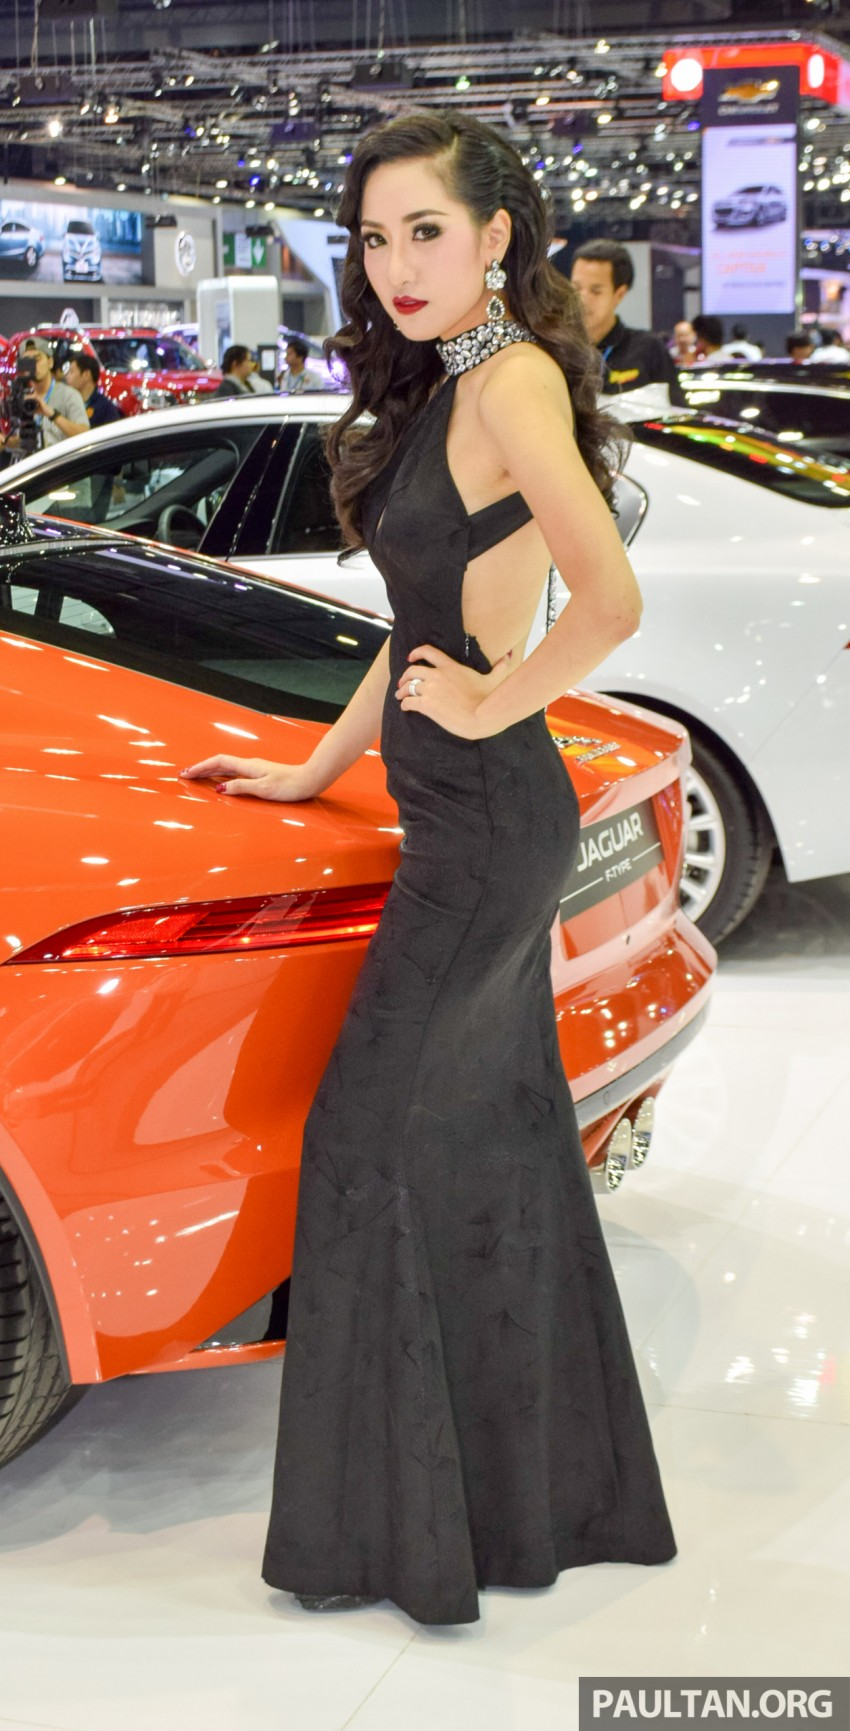 GALLERY: The girls of the 2015 Thailand Motor Expo Image #416331